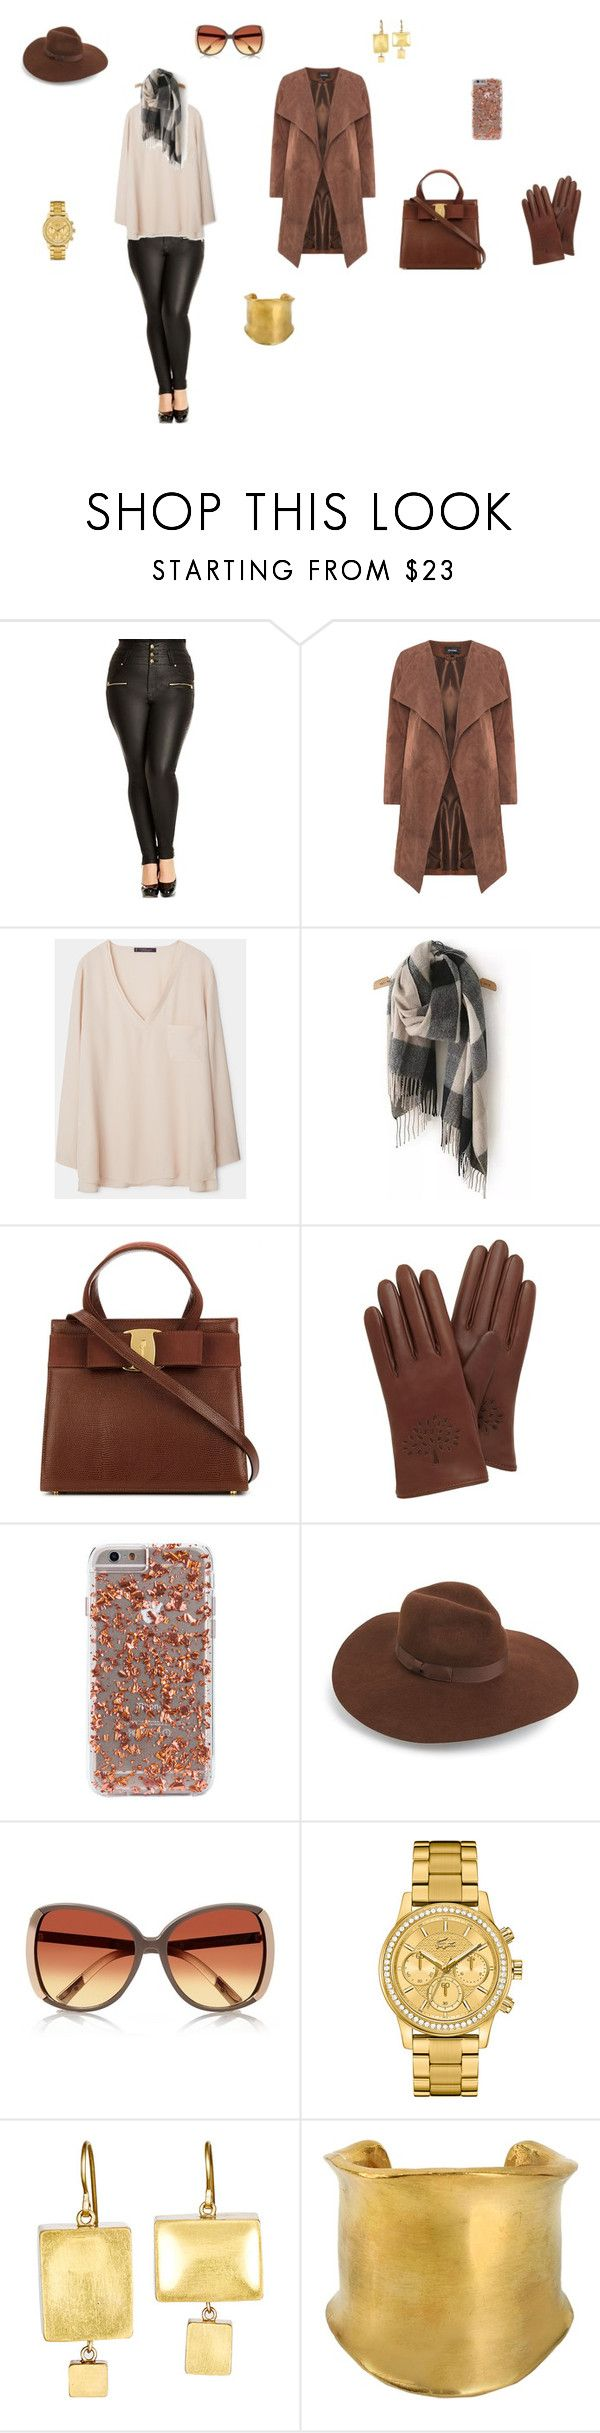 """""""Big City Look"""" by stylemeetsprofile on Polyvore featuring Mode, City Chic, Violeta by Mango, Mulberry, Lack of Color, River Island, Lacoste, Judy Geib, Emilio Pucci und women's clothing"""